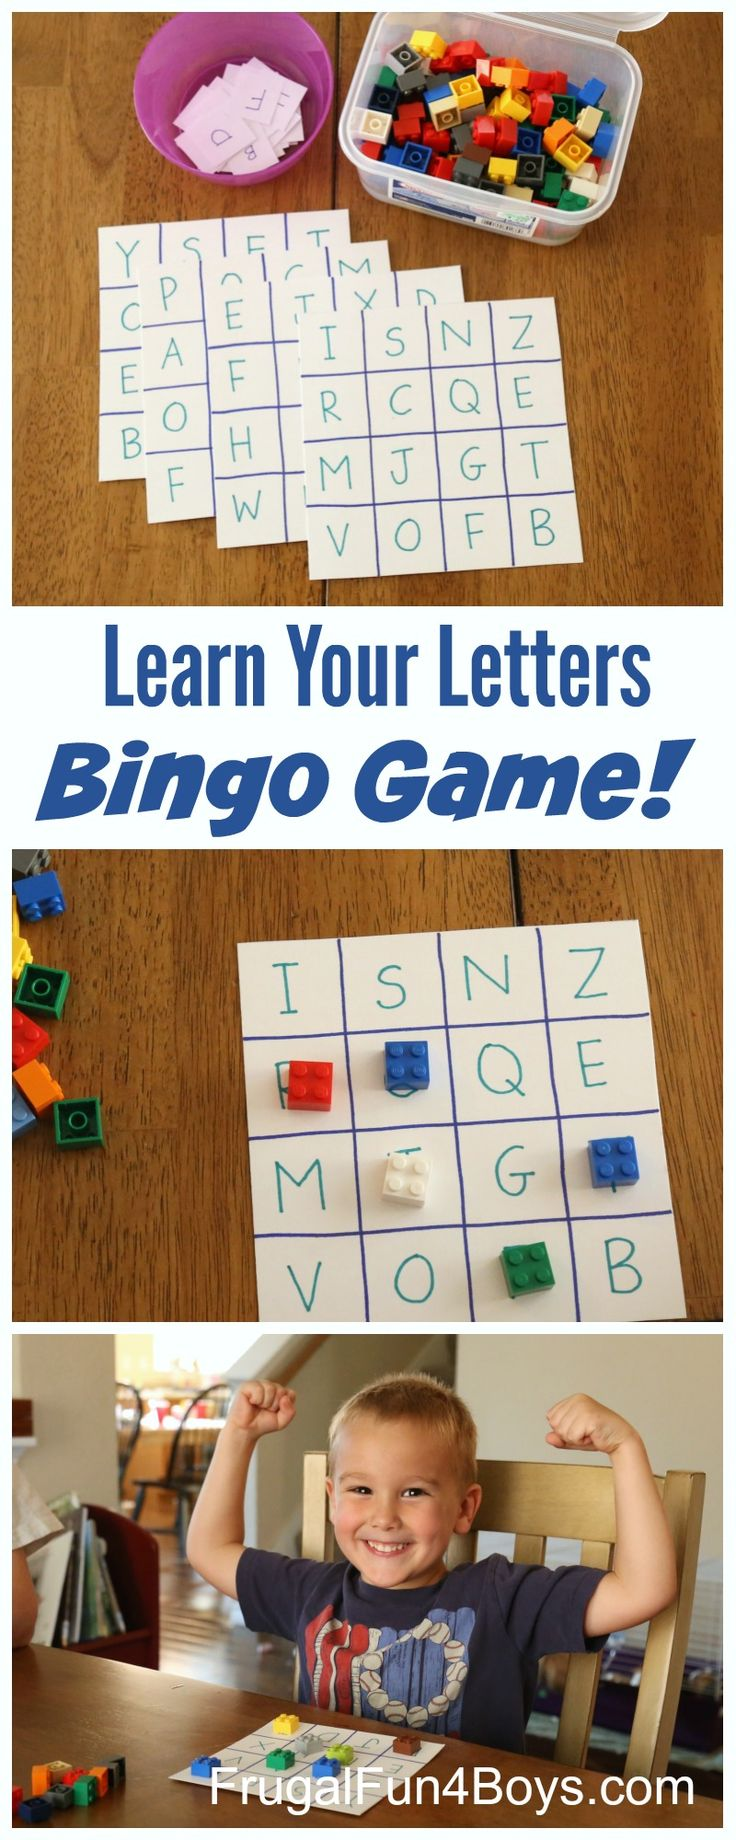 Here's another fun alphabet activity for kids – alphabet bingo!  This game is simple to make with materials you have on hand, and my preschooler loved it. I made bingo cards with 16 letters on each card.  I wanted each card to have a nice assortment of letters, but not the entire alphabet so that...Read More »